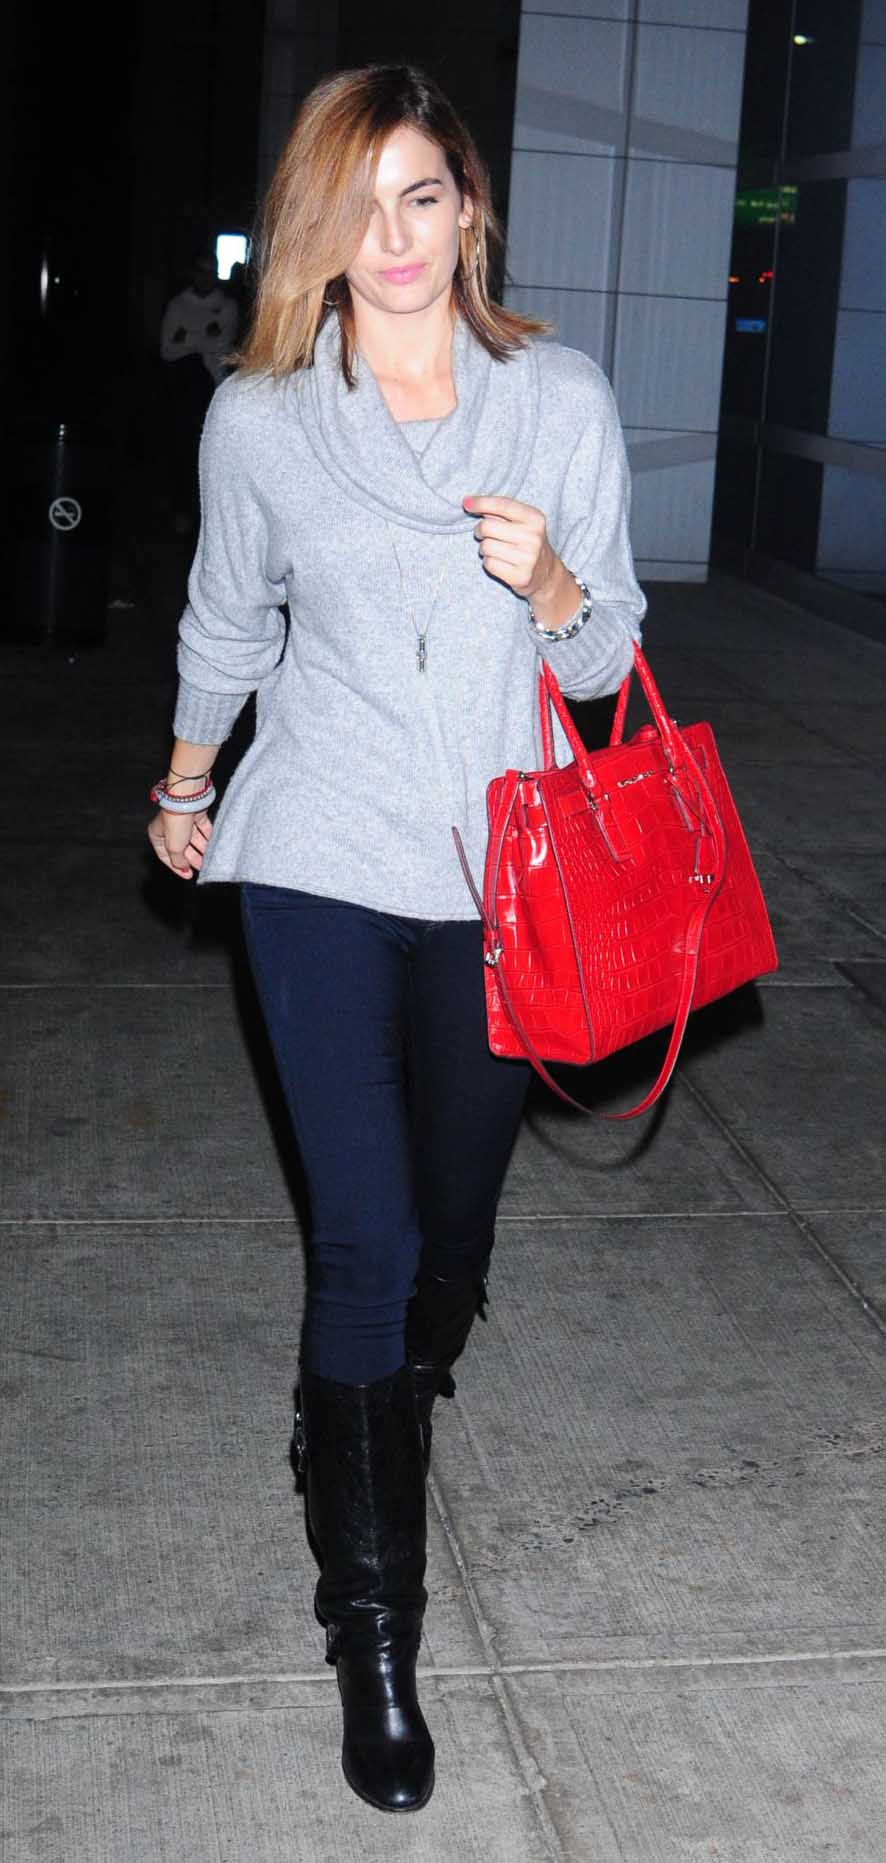 blue-navy-skinny-jeans-grayl-sweater-cowlneck-red-bag-hoops-black-shoe-boots-camillabelle-hairr-fall-winter-weekend.jpg